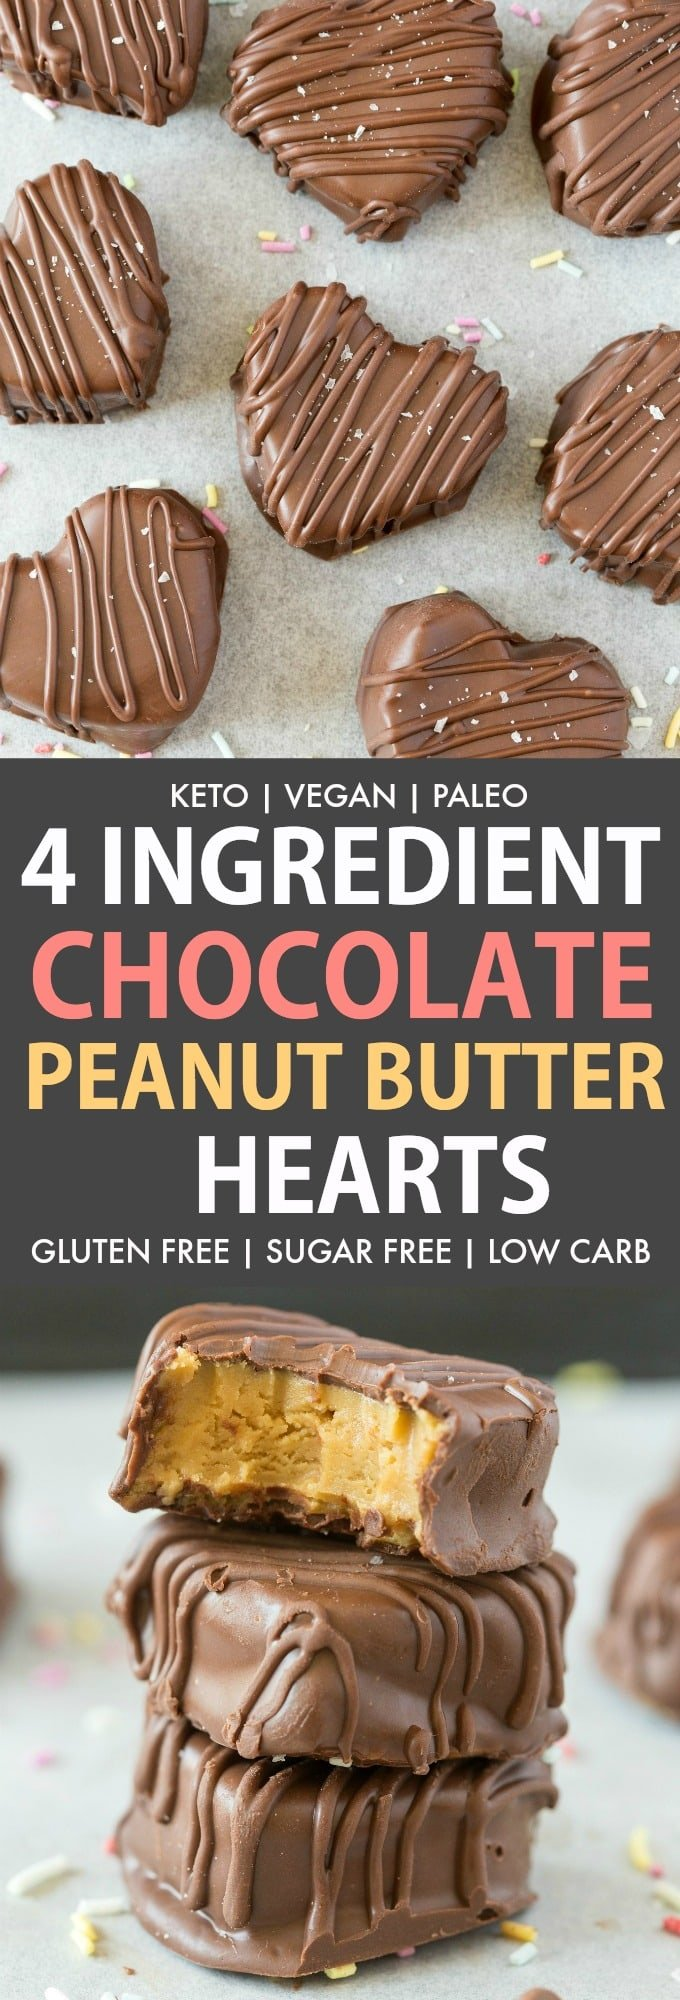 A collage of 4 ingredient chocolate peanut butter hearts, keto and vegan.